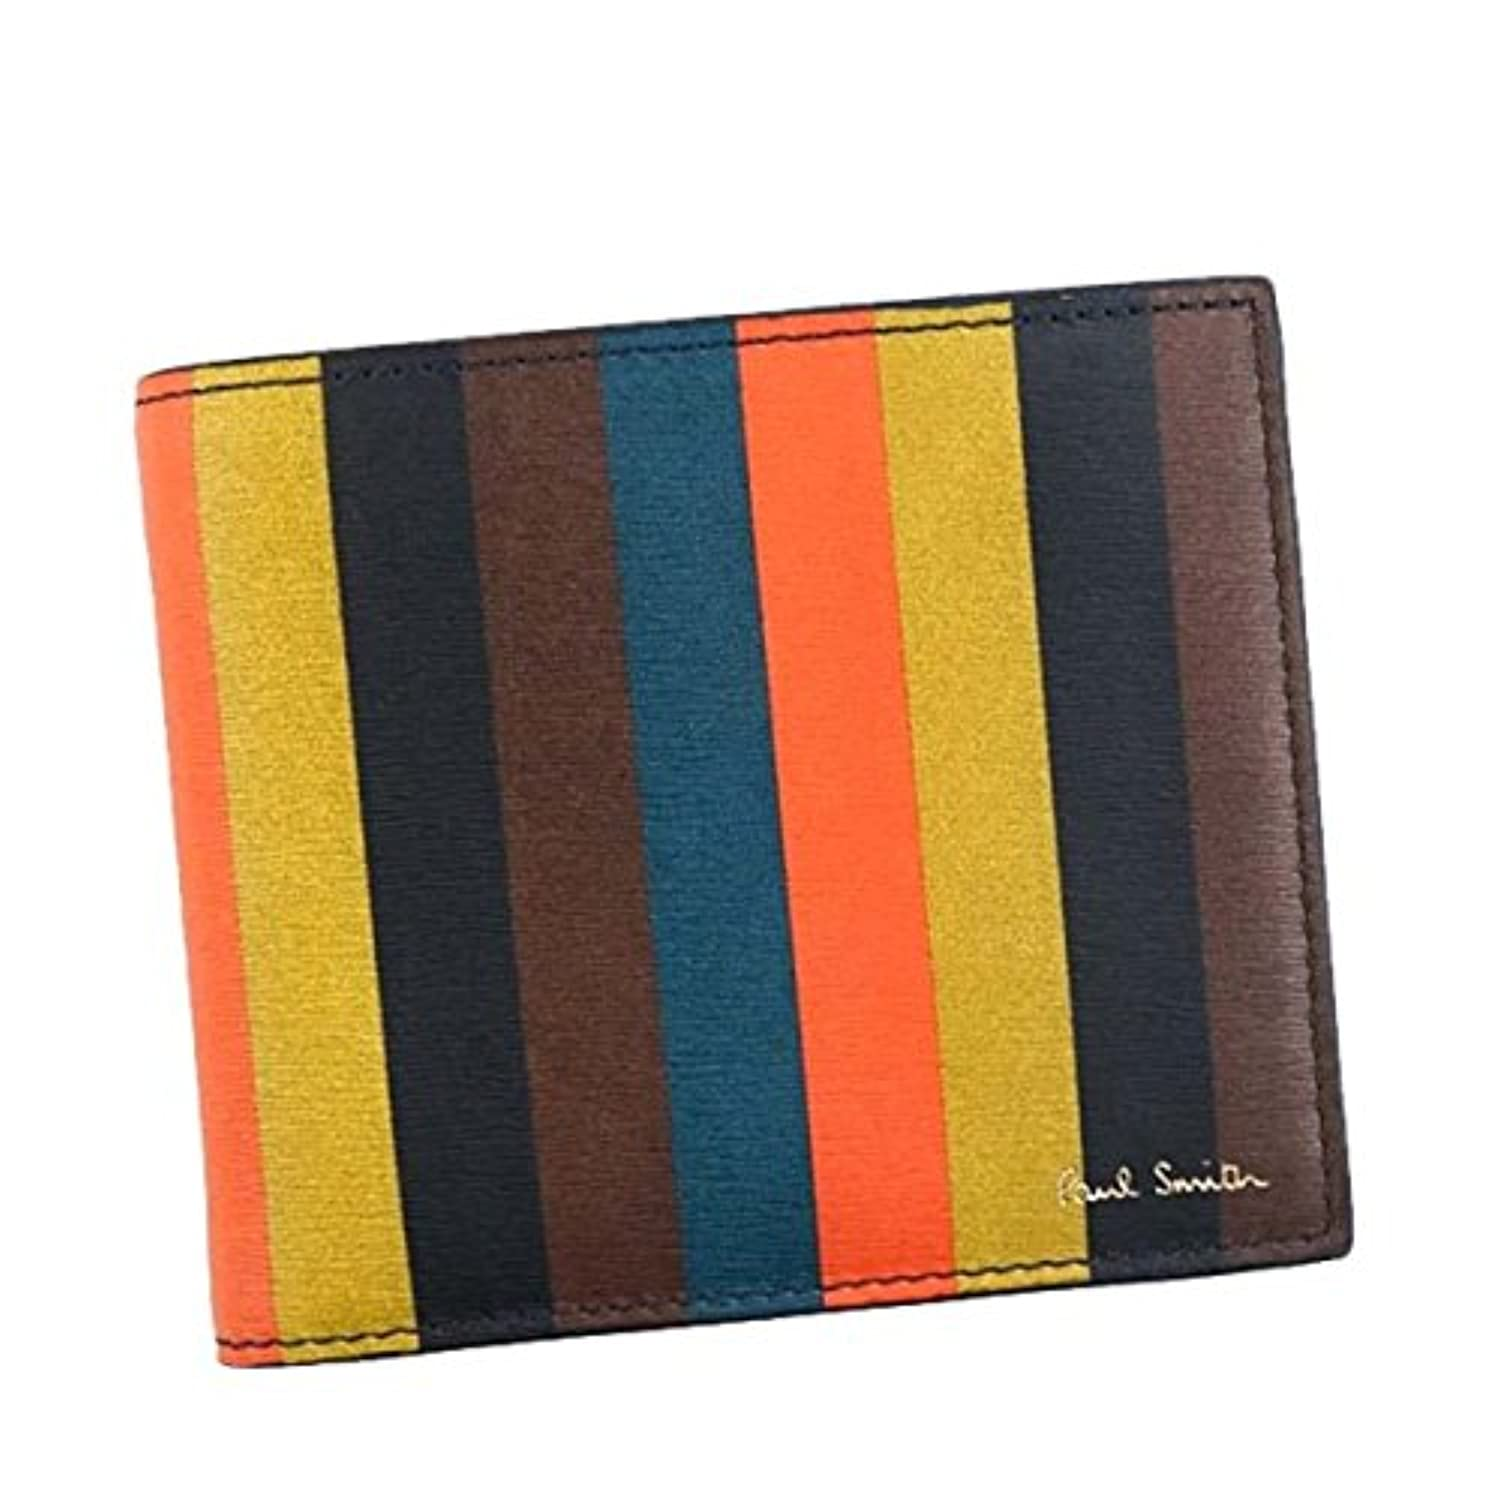 ポールスミス 財布 二つ折り財布 PAUL SMITH AUPC4833 BILLFOLD WALLET AND COIN 96 MULTI W785A 100%LEATHER 並行輸入品